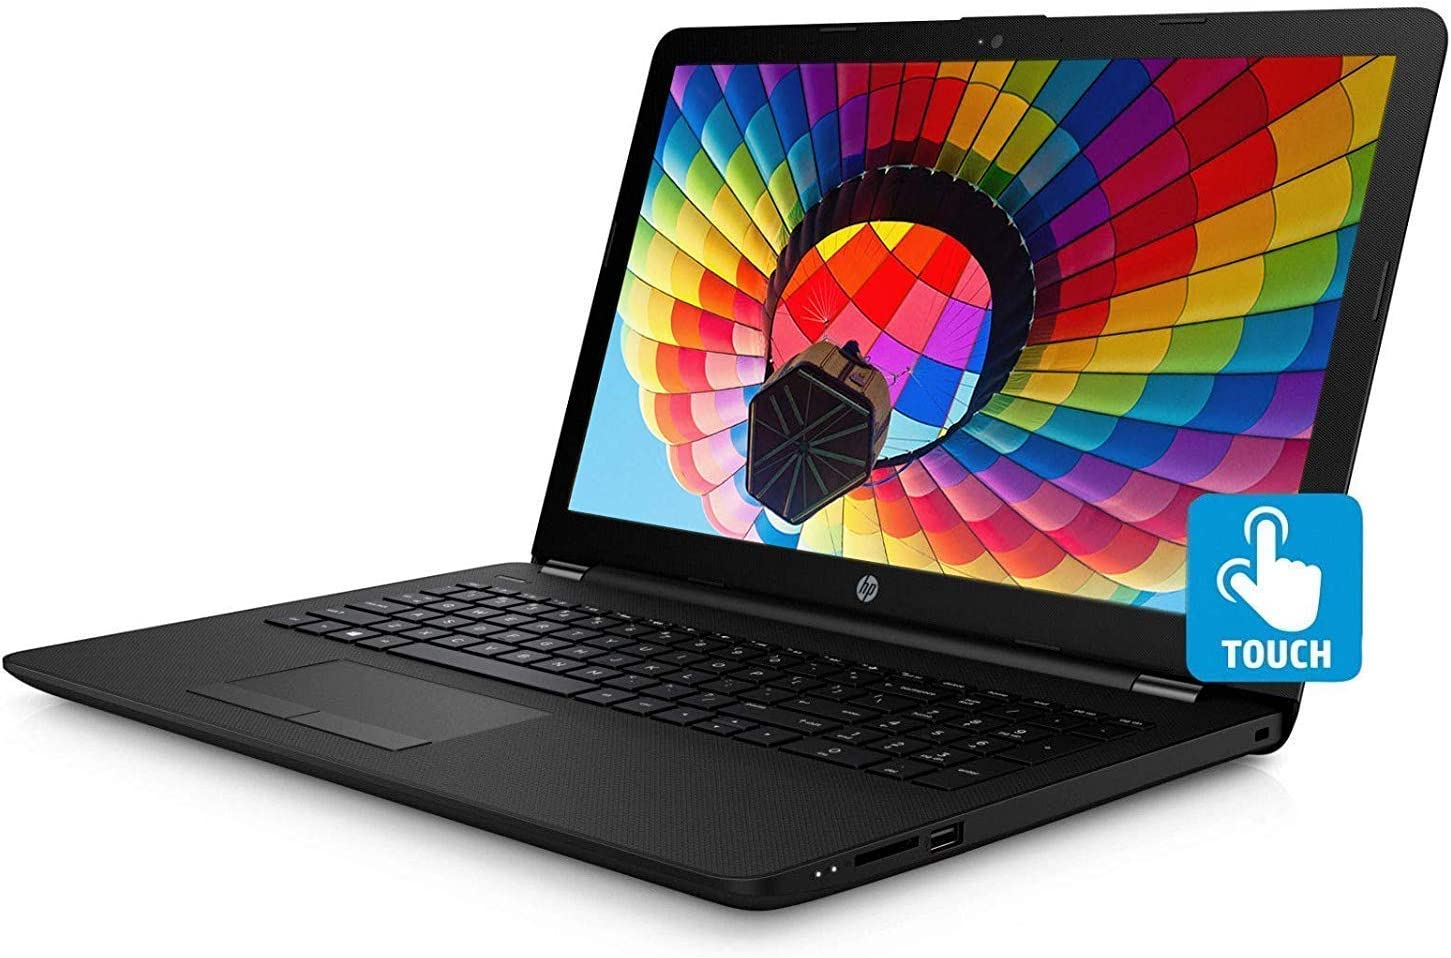 "HP 15.6"" HD 2019 New Touch-Screen Laptop Notebook Computer, Intel Pentium Quad-Core N5000 (up to 2.7 GHz), 8GB DDR4, 1TB HDD, Bluetooth, Wi-Fi, HDMI, Webcam, Win 10 (Renewed)"